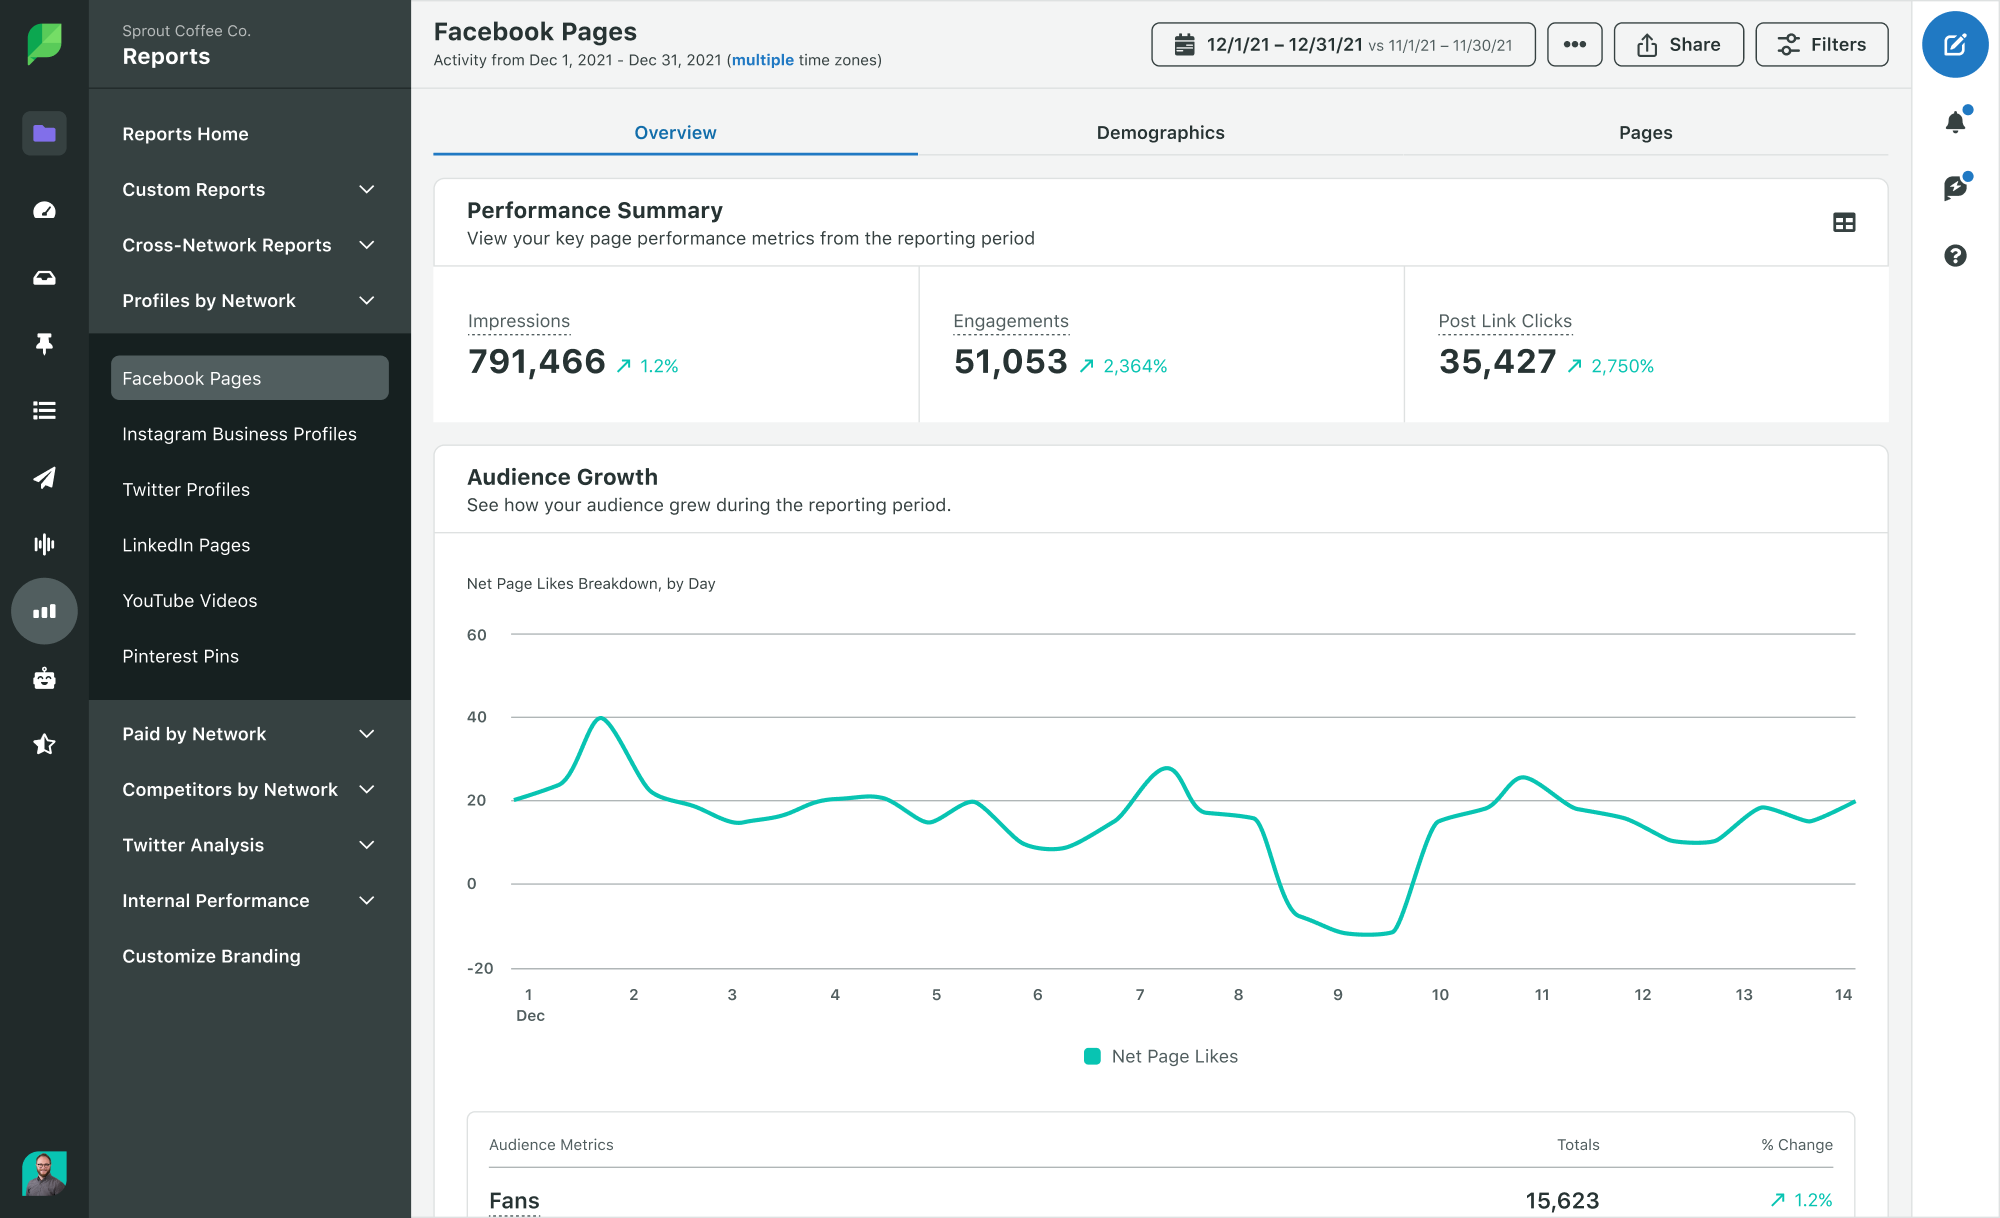 Sprout Social Facebook analytics report